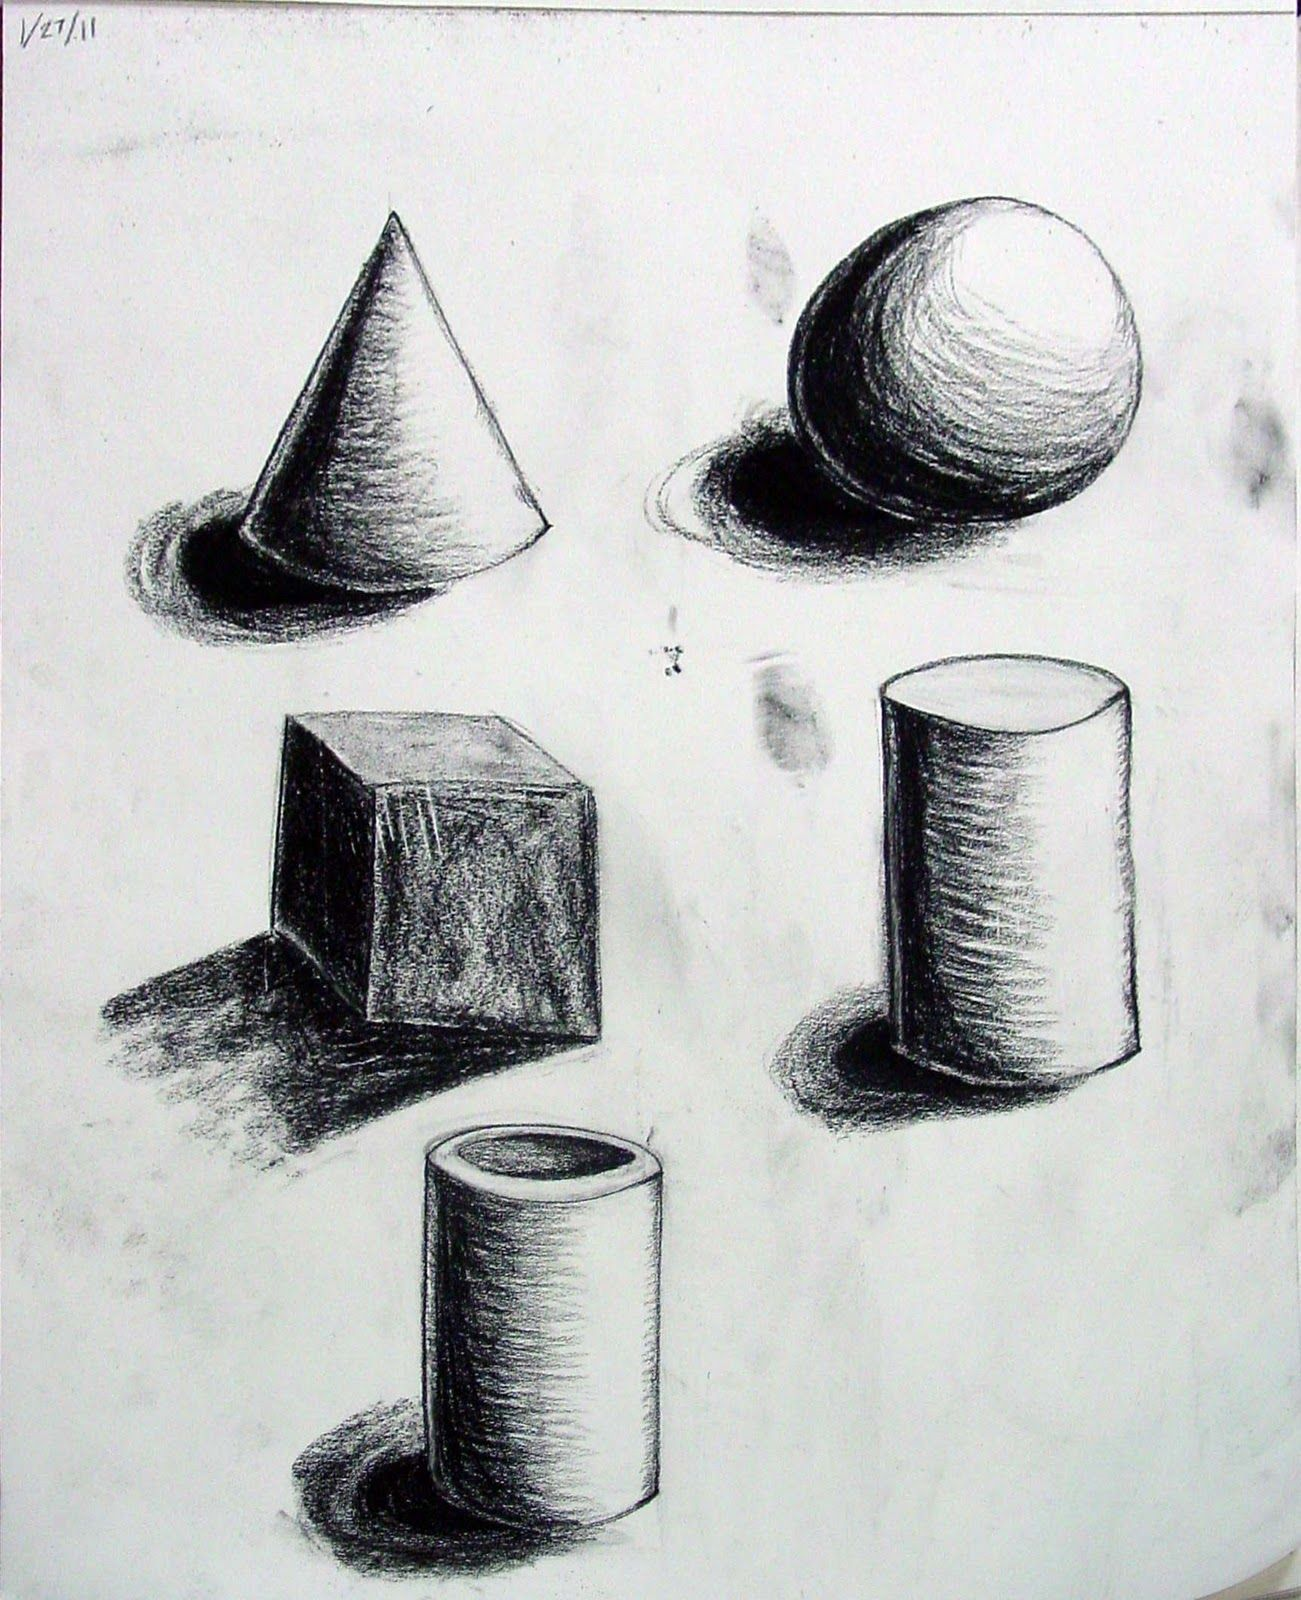 form- these sketches of different shapes in 3d really bring out the